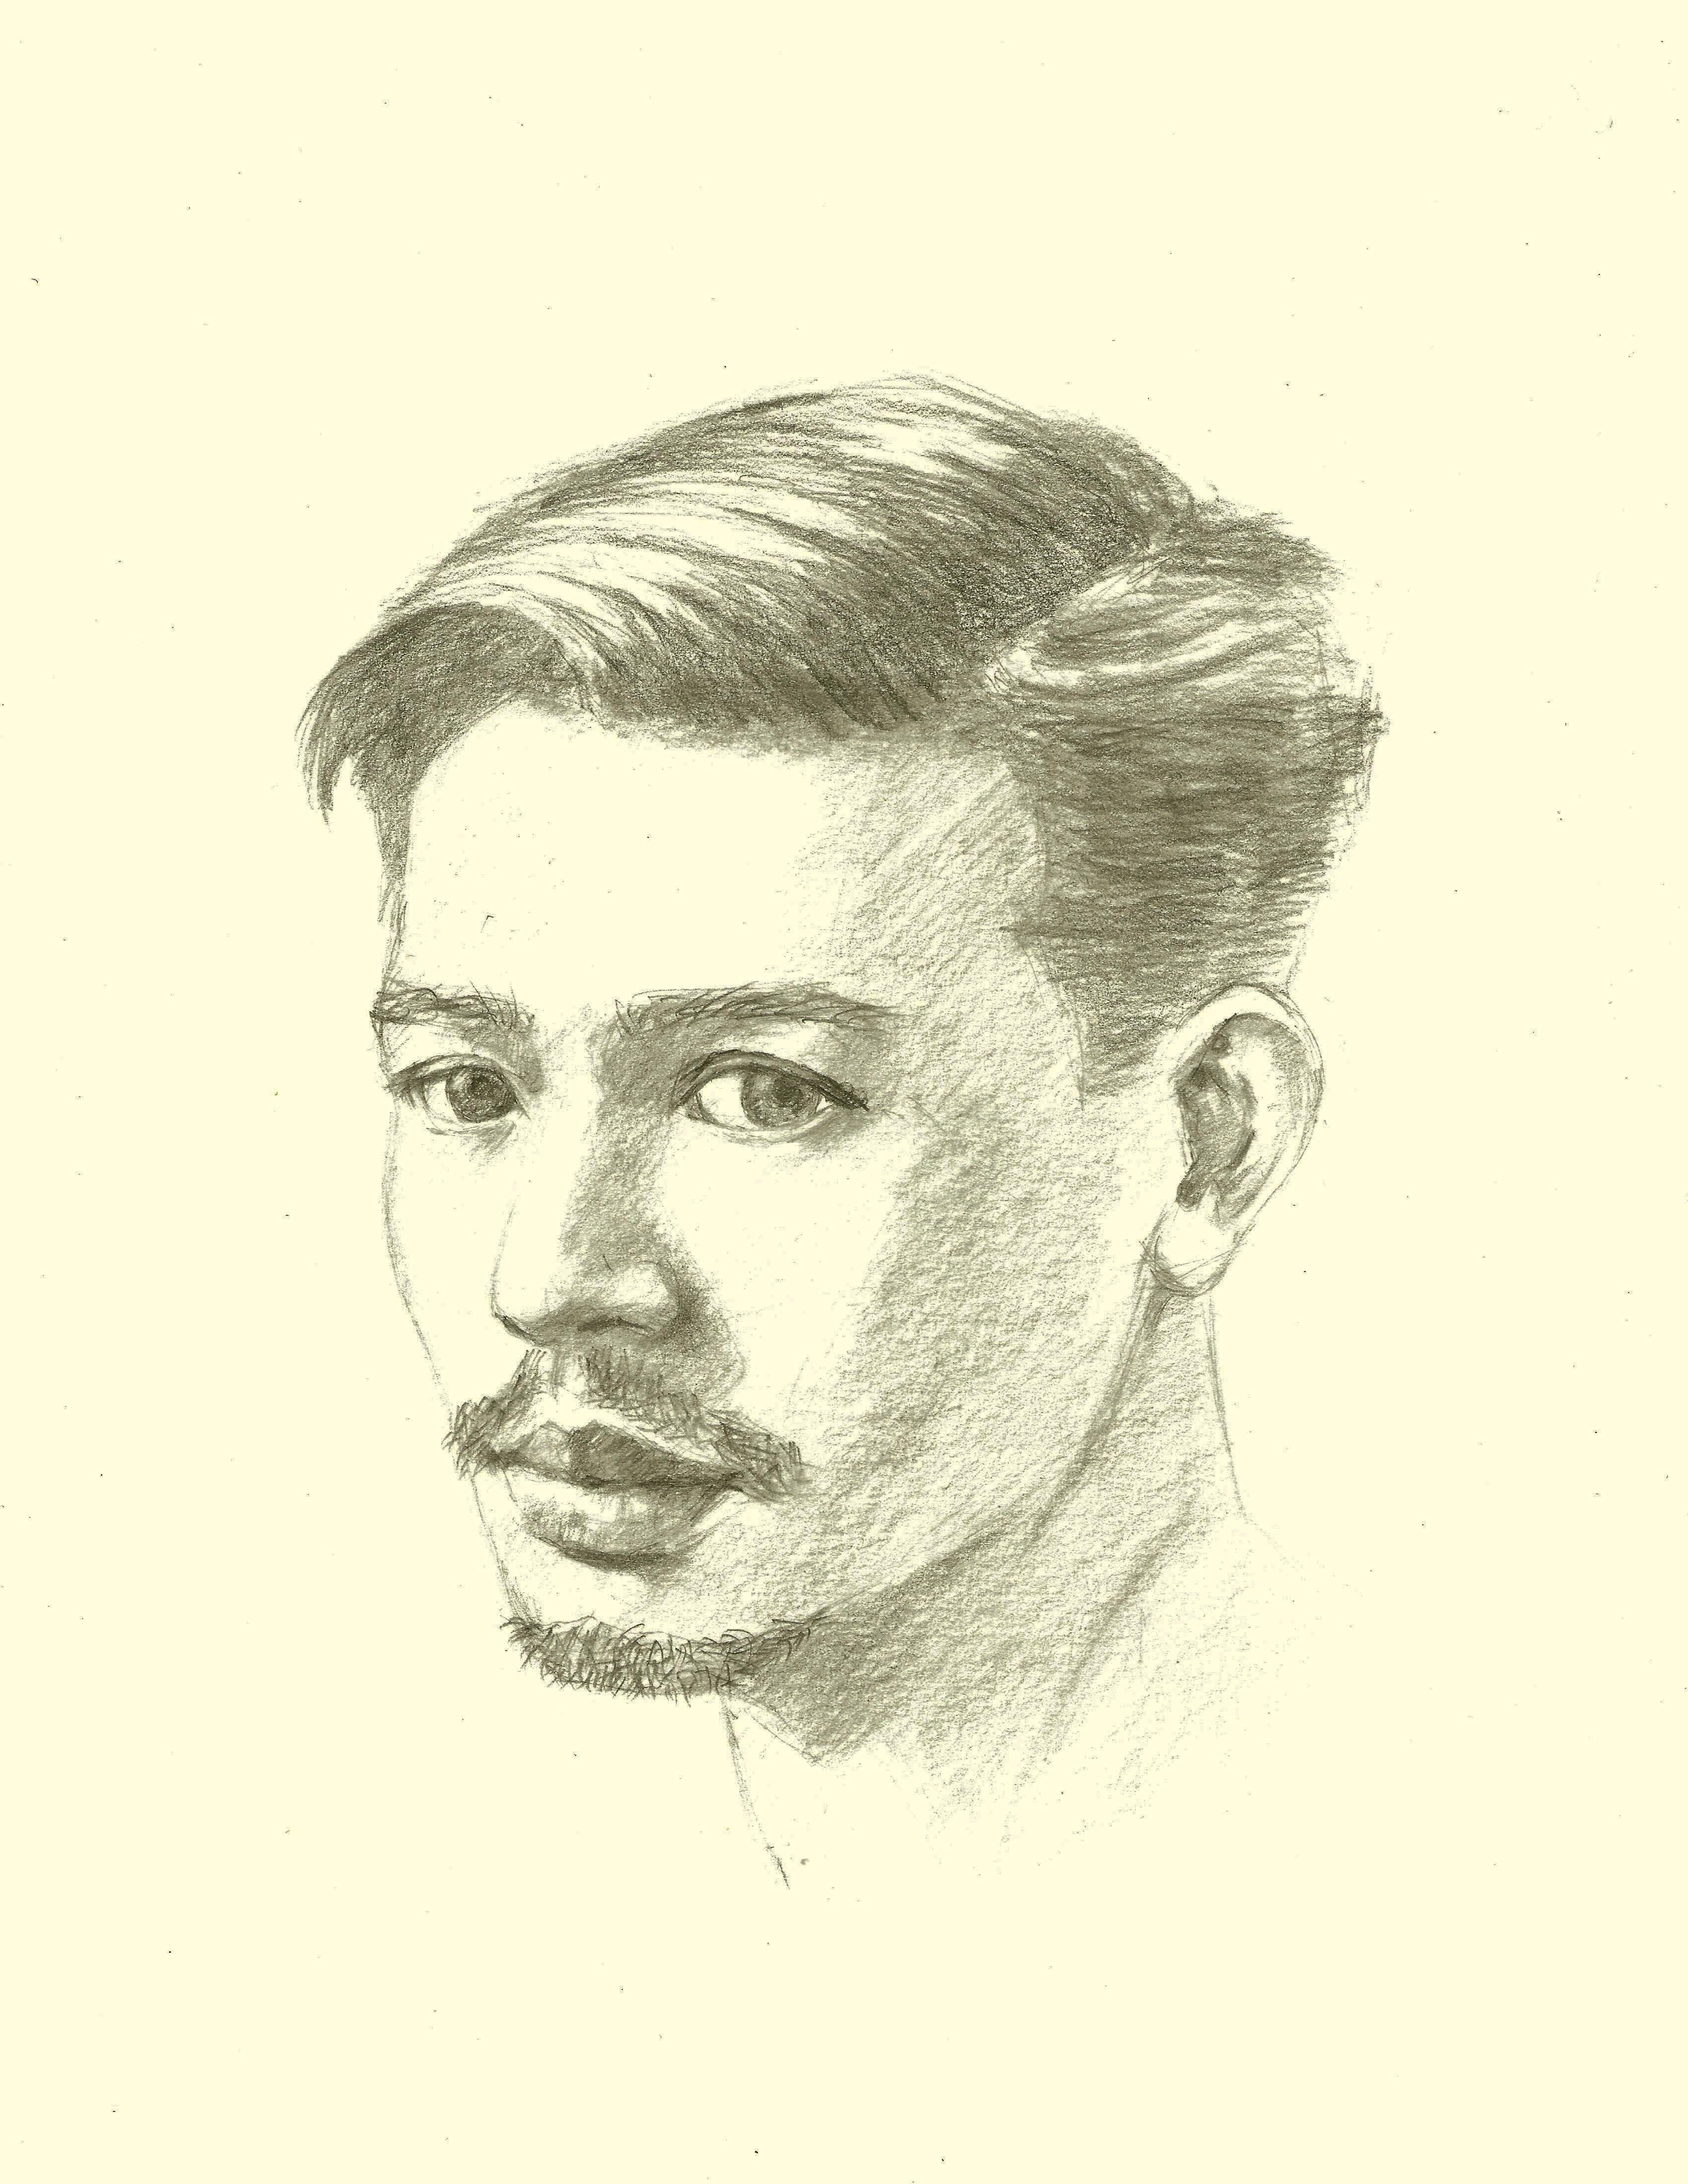 Portrait Drawing Fundamentals How To Draw Realistic Heads Faces Ethan Nguyen Skillshare